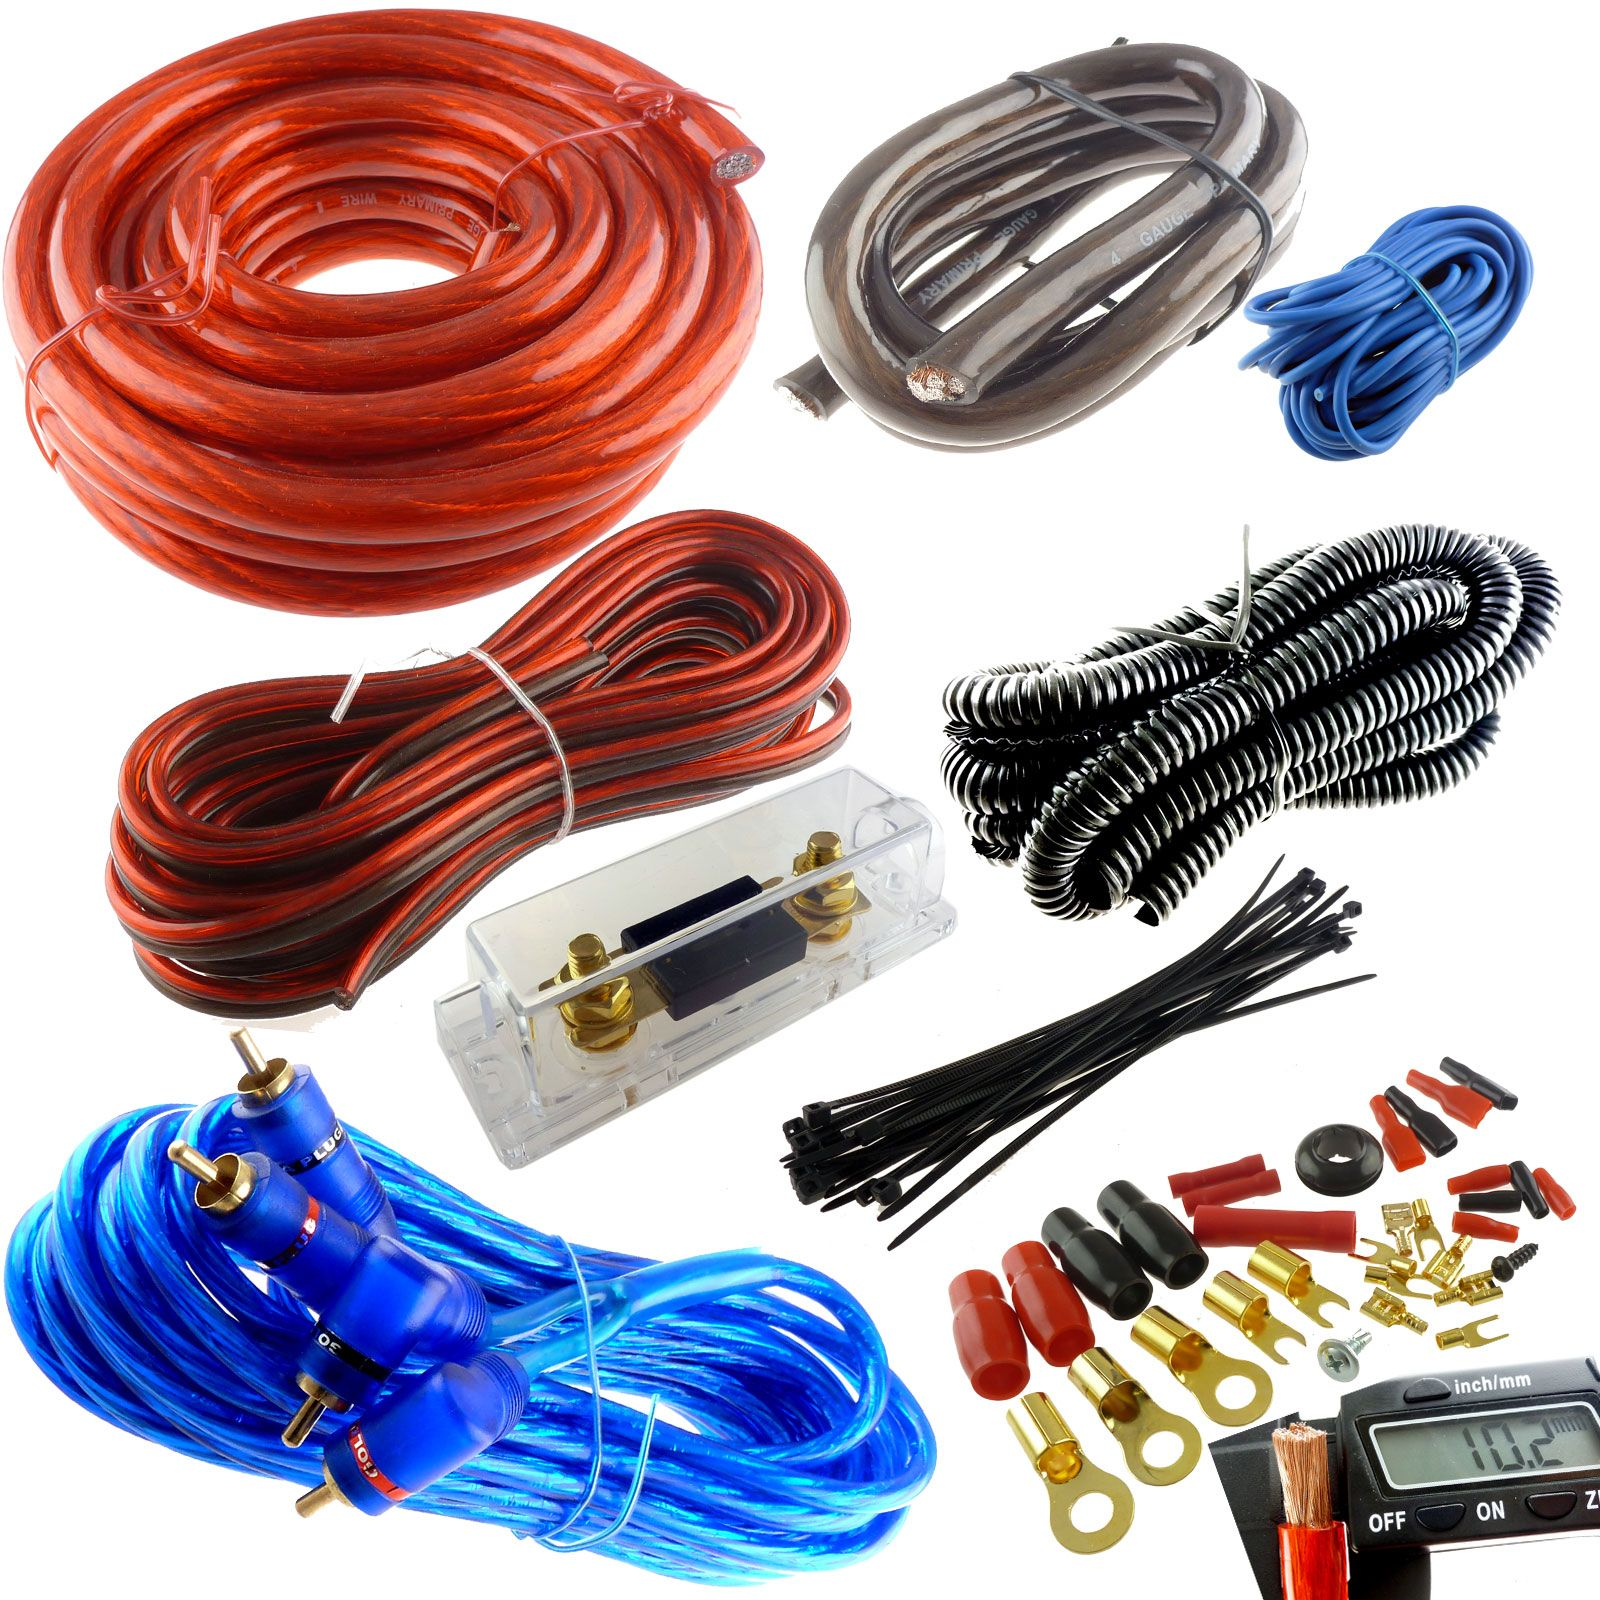 4 gauge premium red power wire wiring kit 3000w install